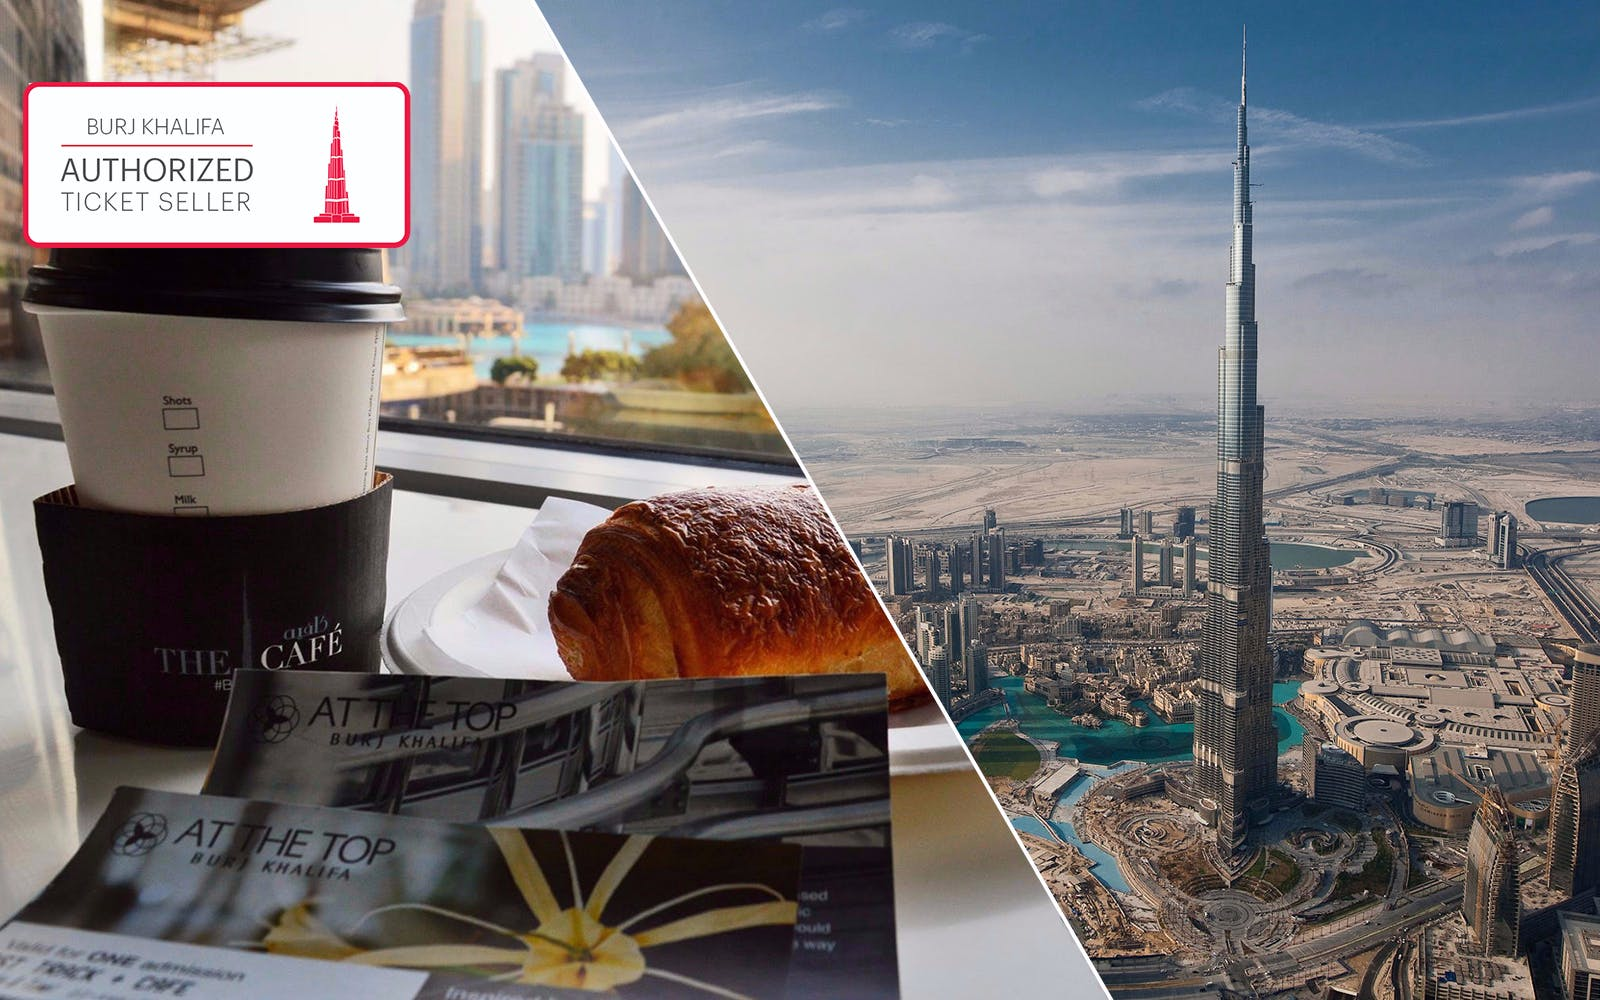 burj khalifa + pastry & coffee at the café-1